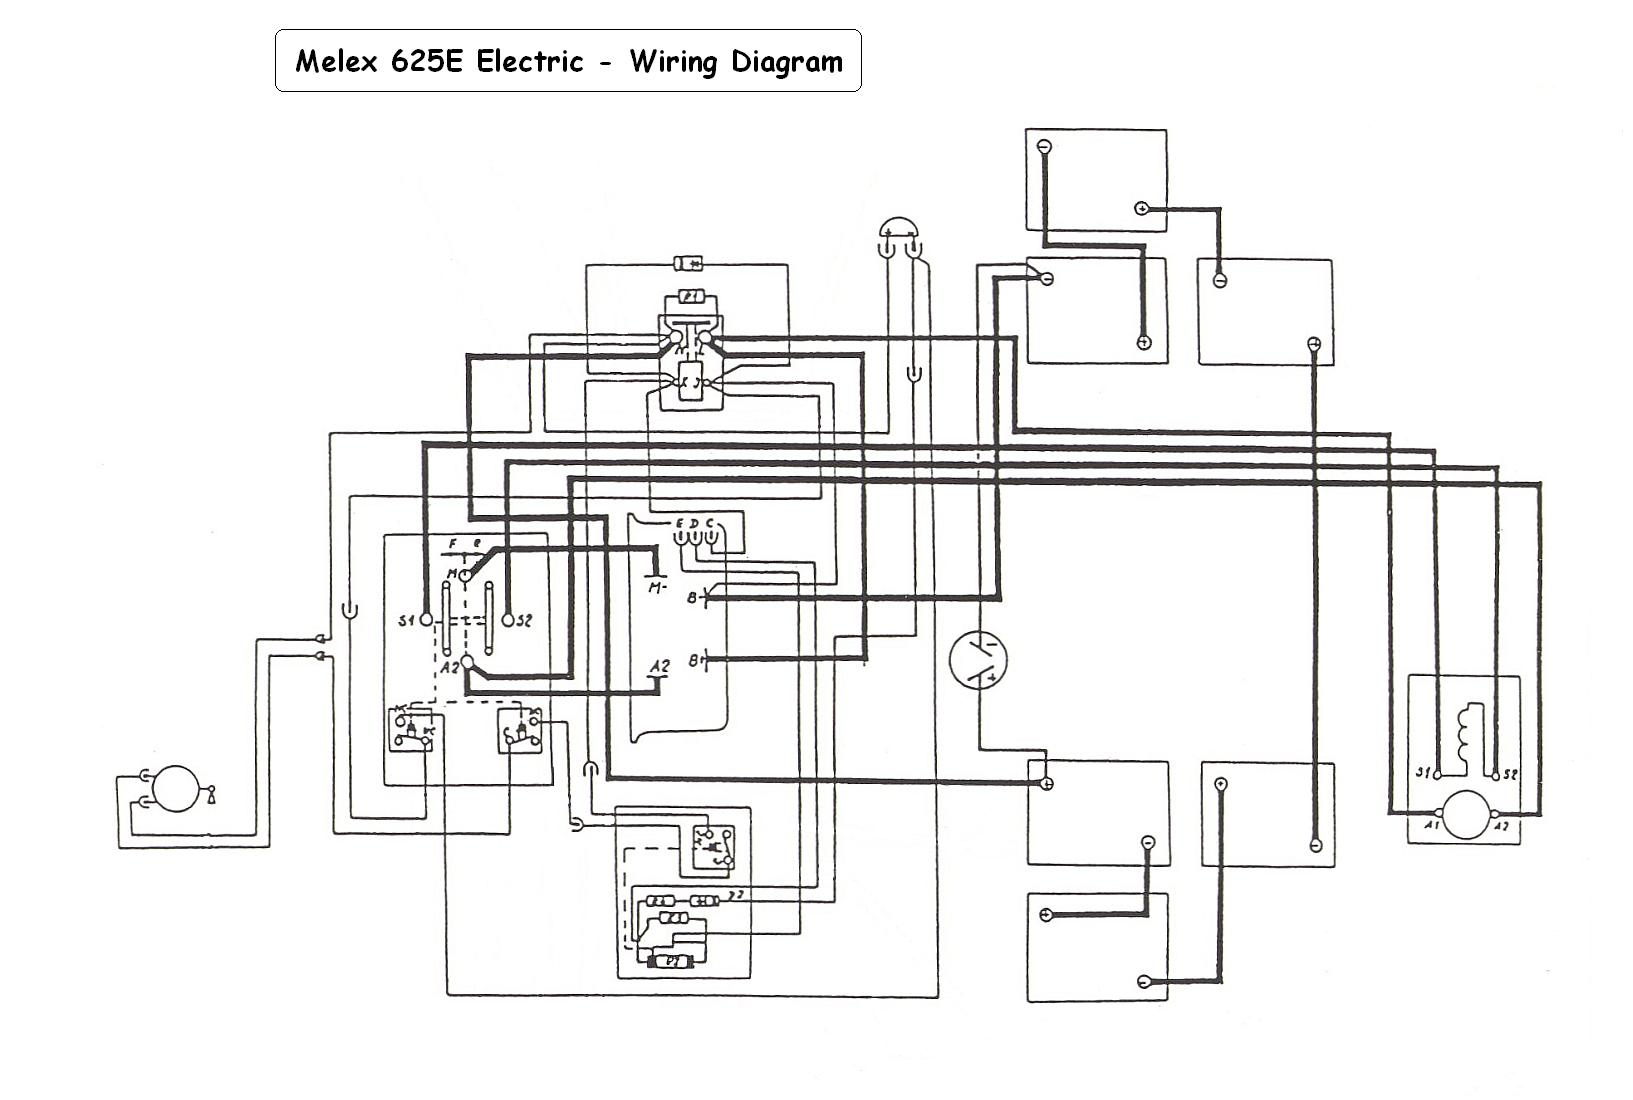 Club Car Precedent Gas Wiring Diagram from www.vintagegolfcartparts.com